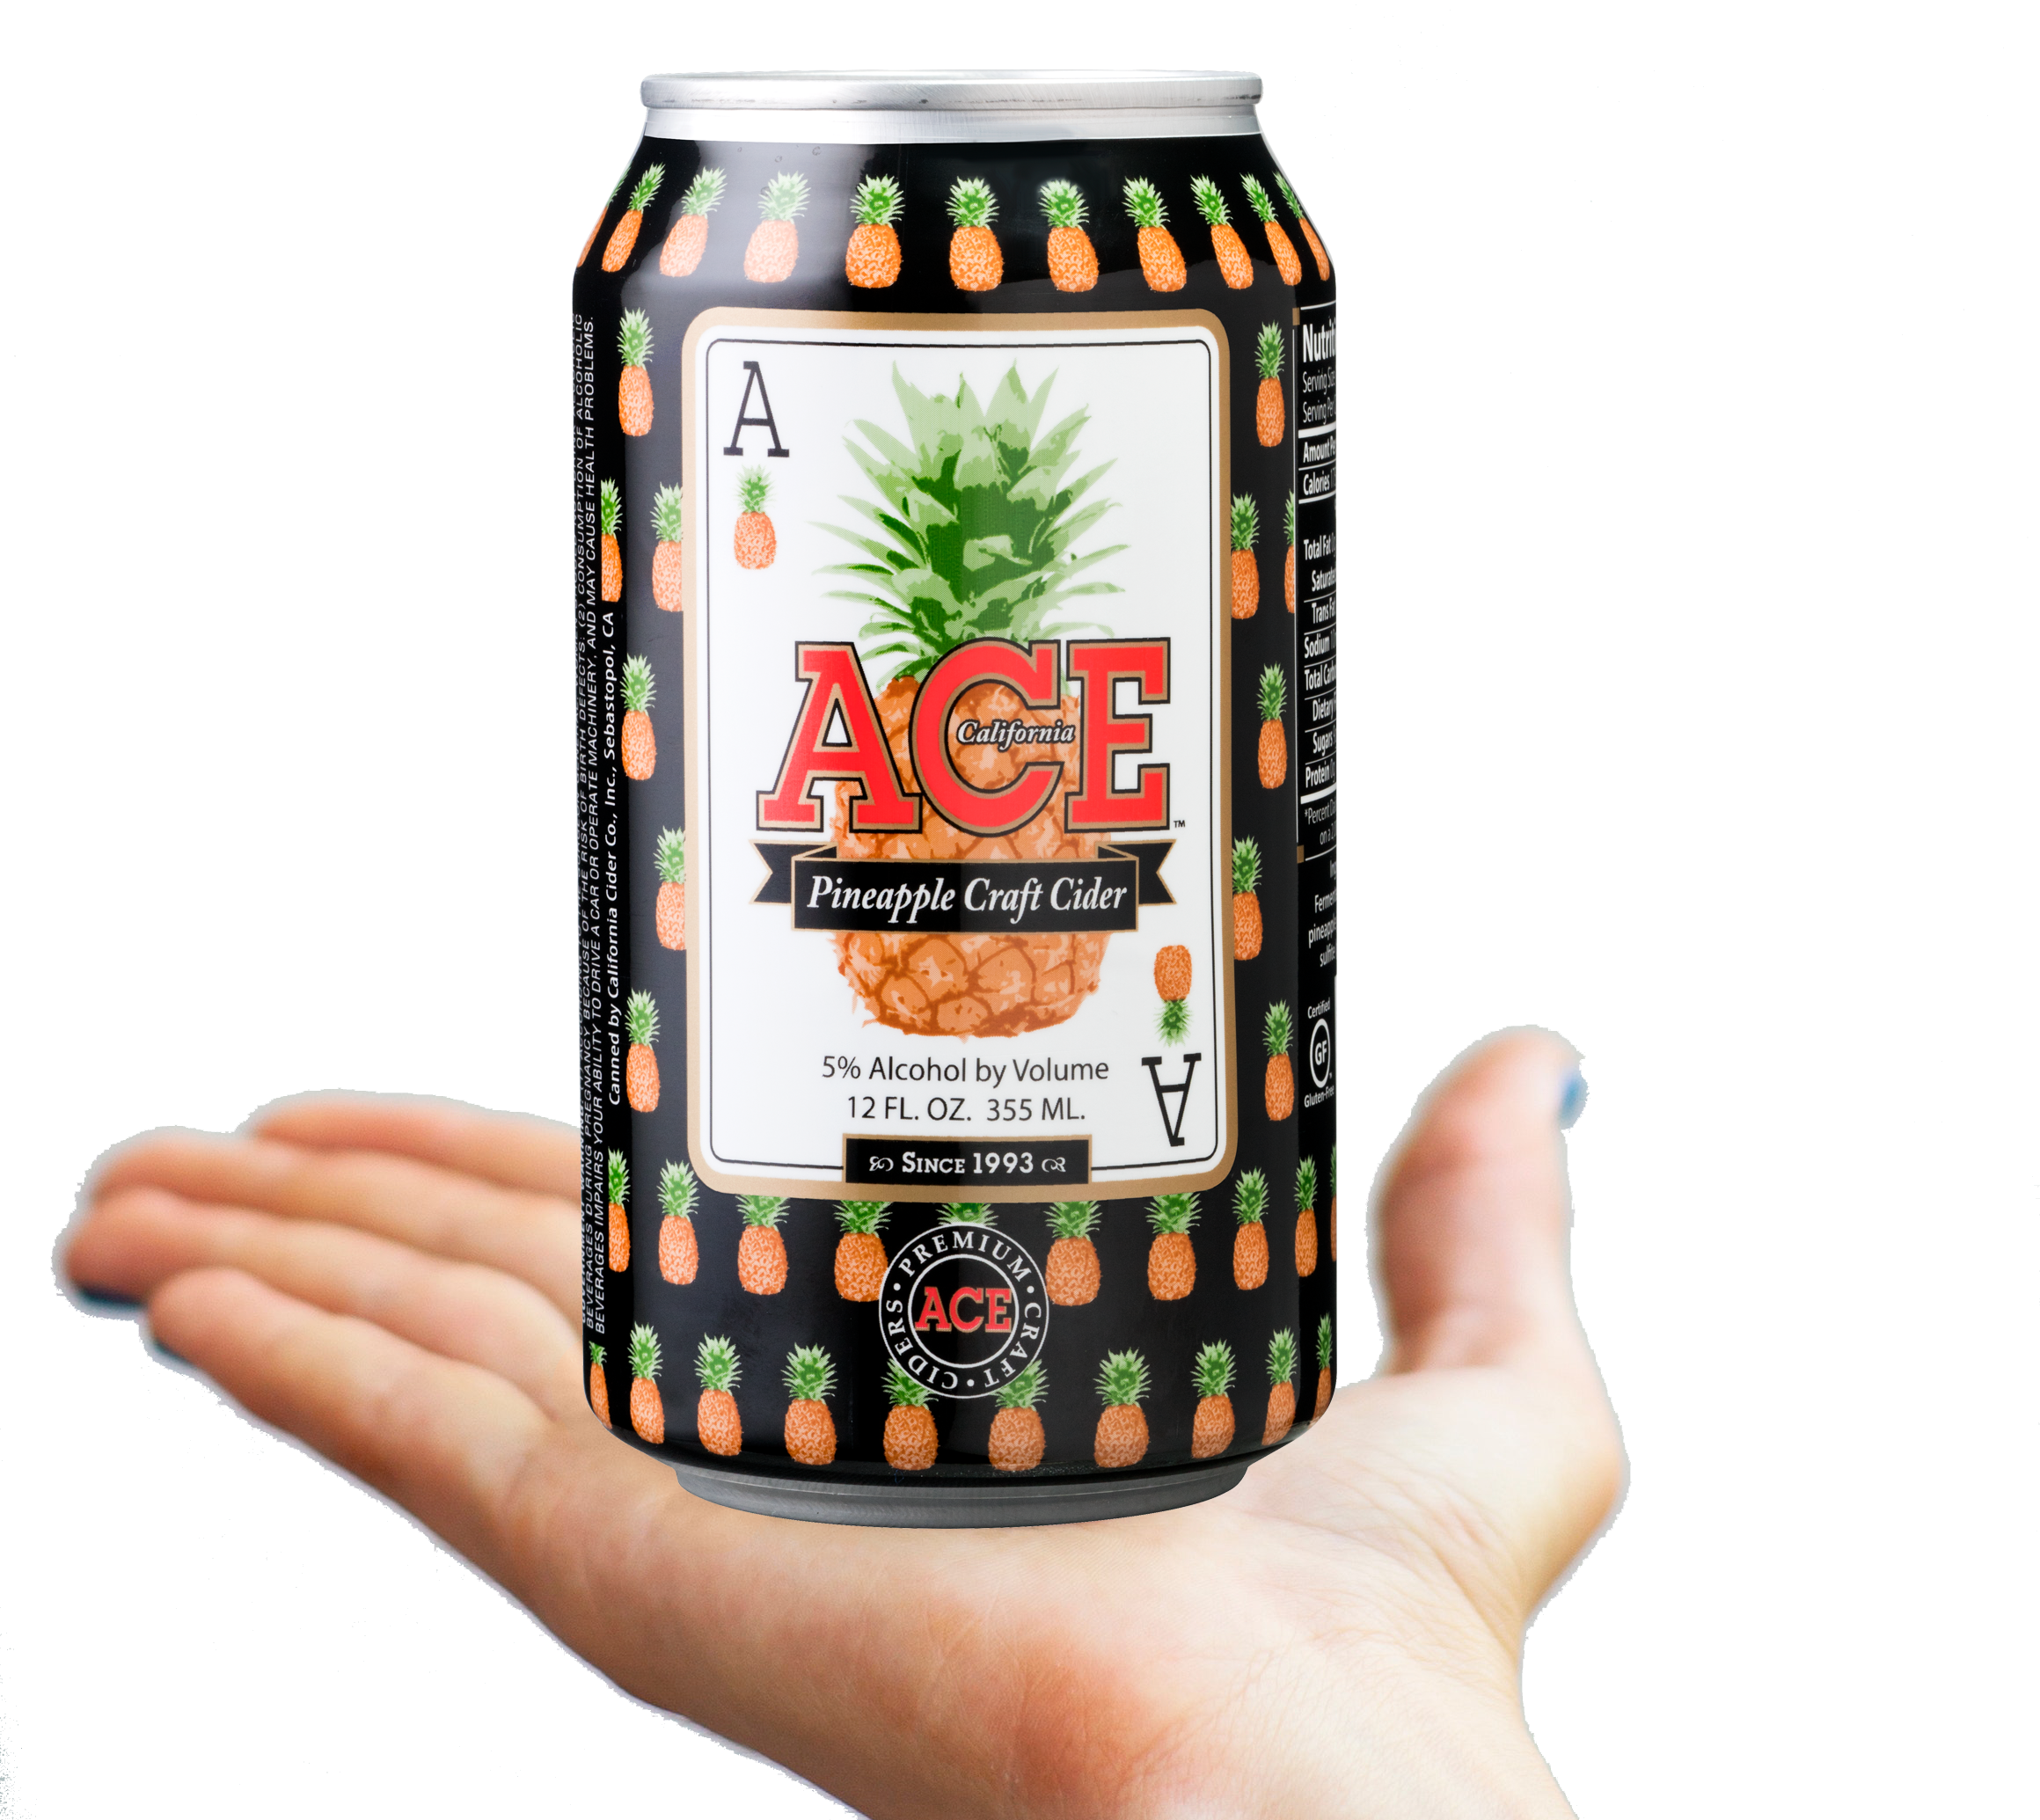 ACE Cider Pineapple Craft Cider on hand